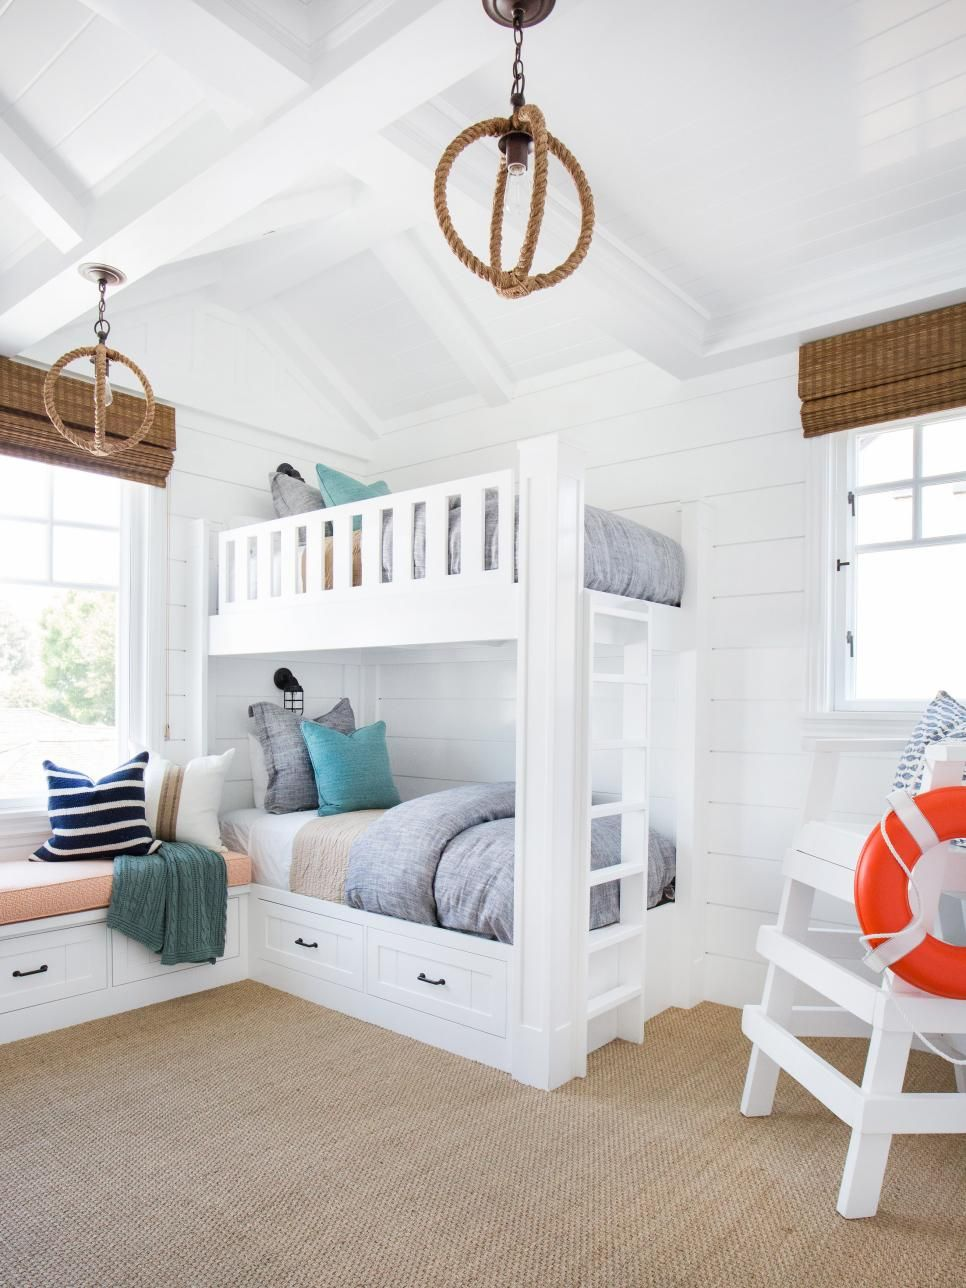 Whimsical Beds Builtin Bunk Beds Are Functional And Adorable In This Coastal